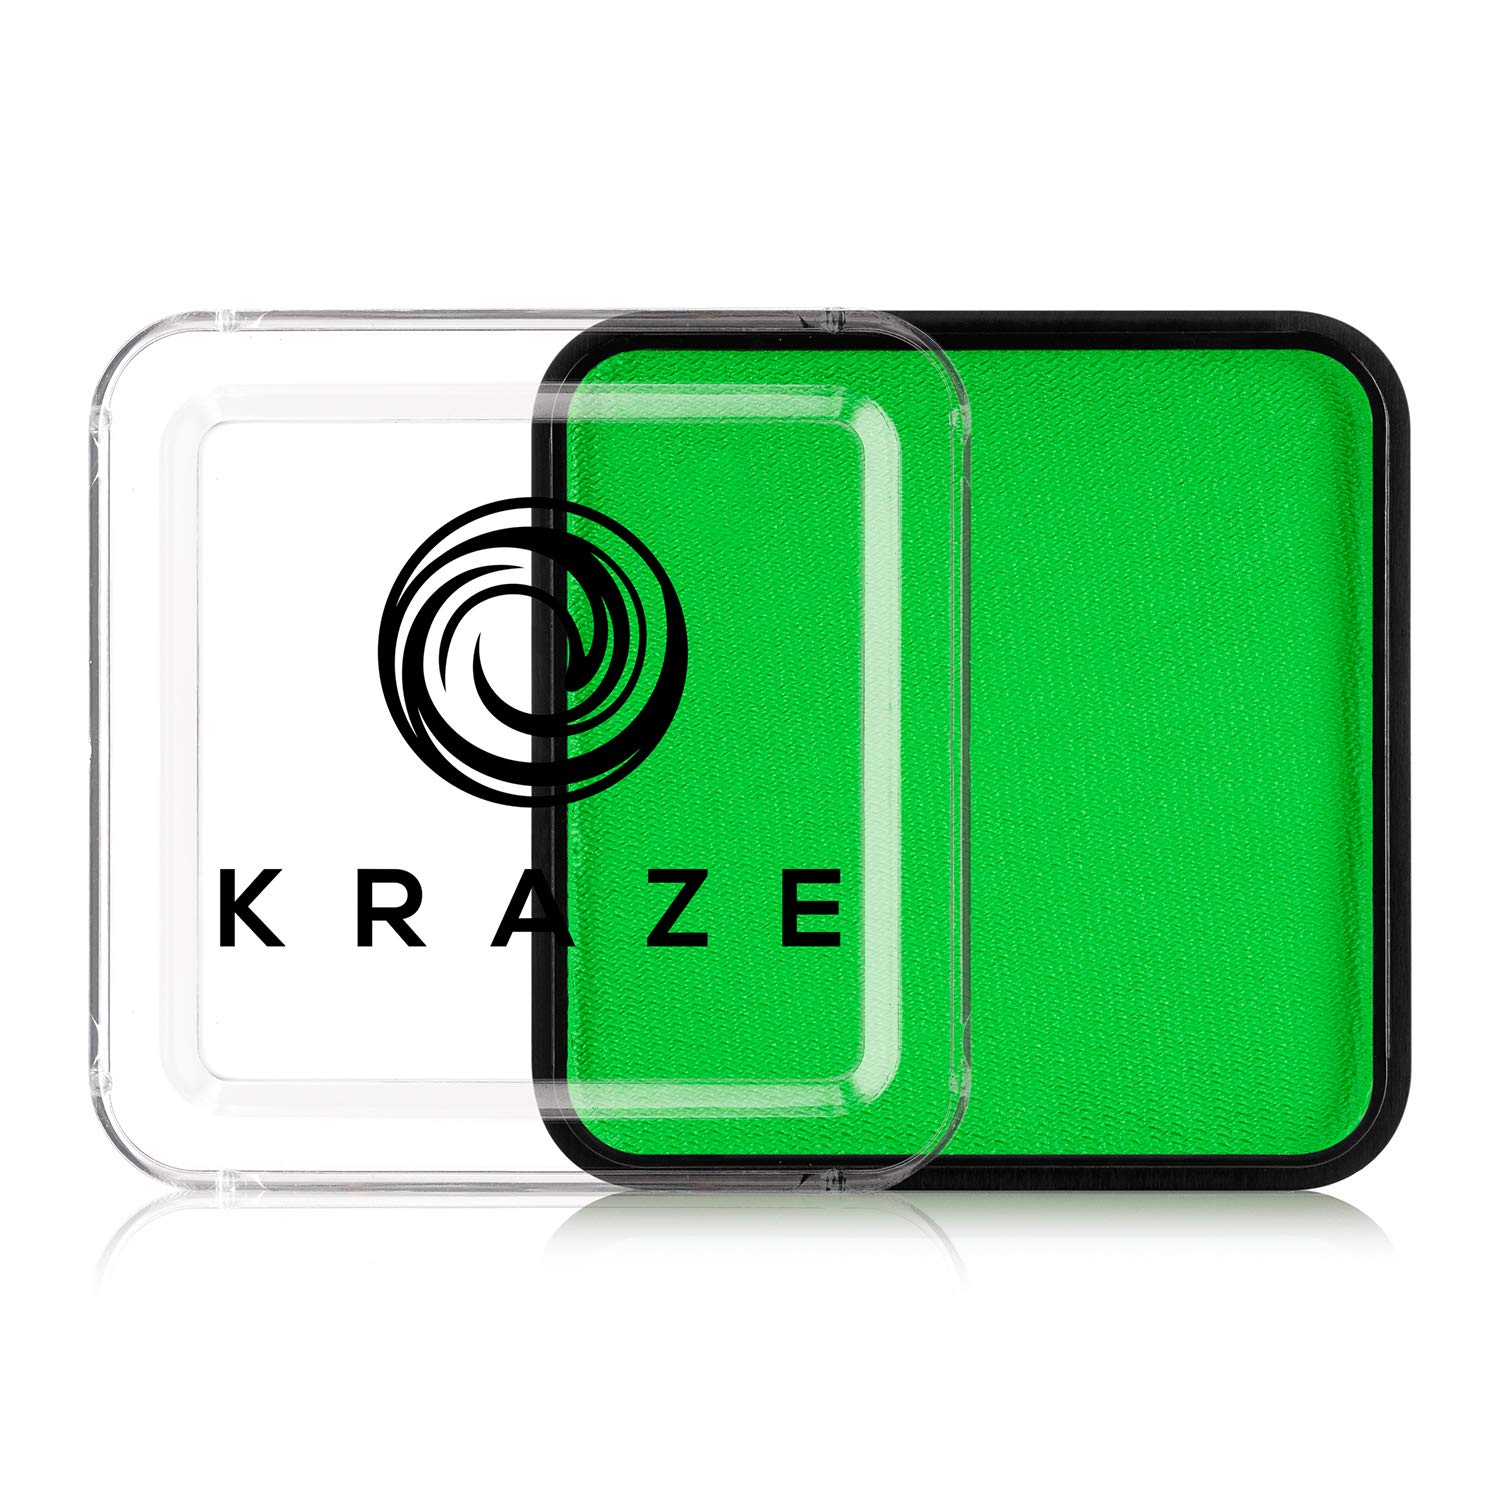 Kraze FX Square - Neon Green (25 gm) - Water Activated, Professional UV Glow Blacklight Reactive Face Painting Colors, Hypoallergenic, Safe, Washable Fluorescent Face & Body Paint